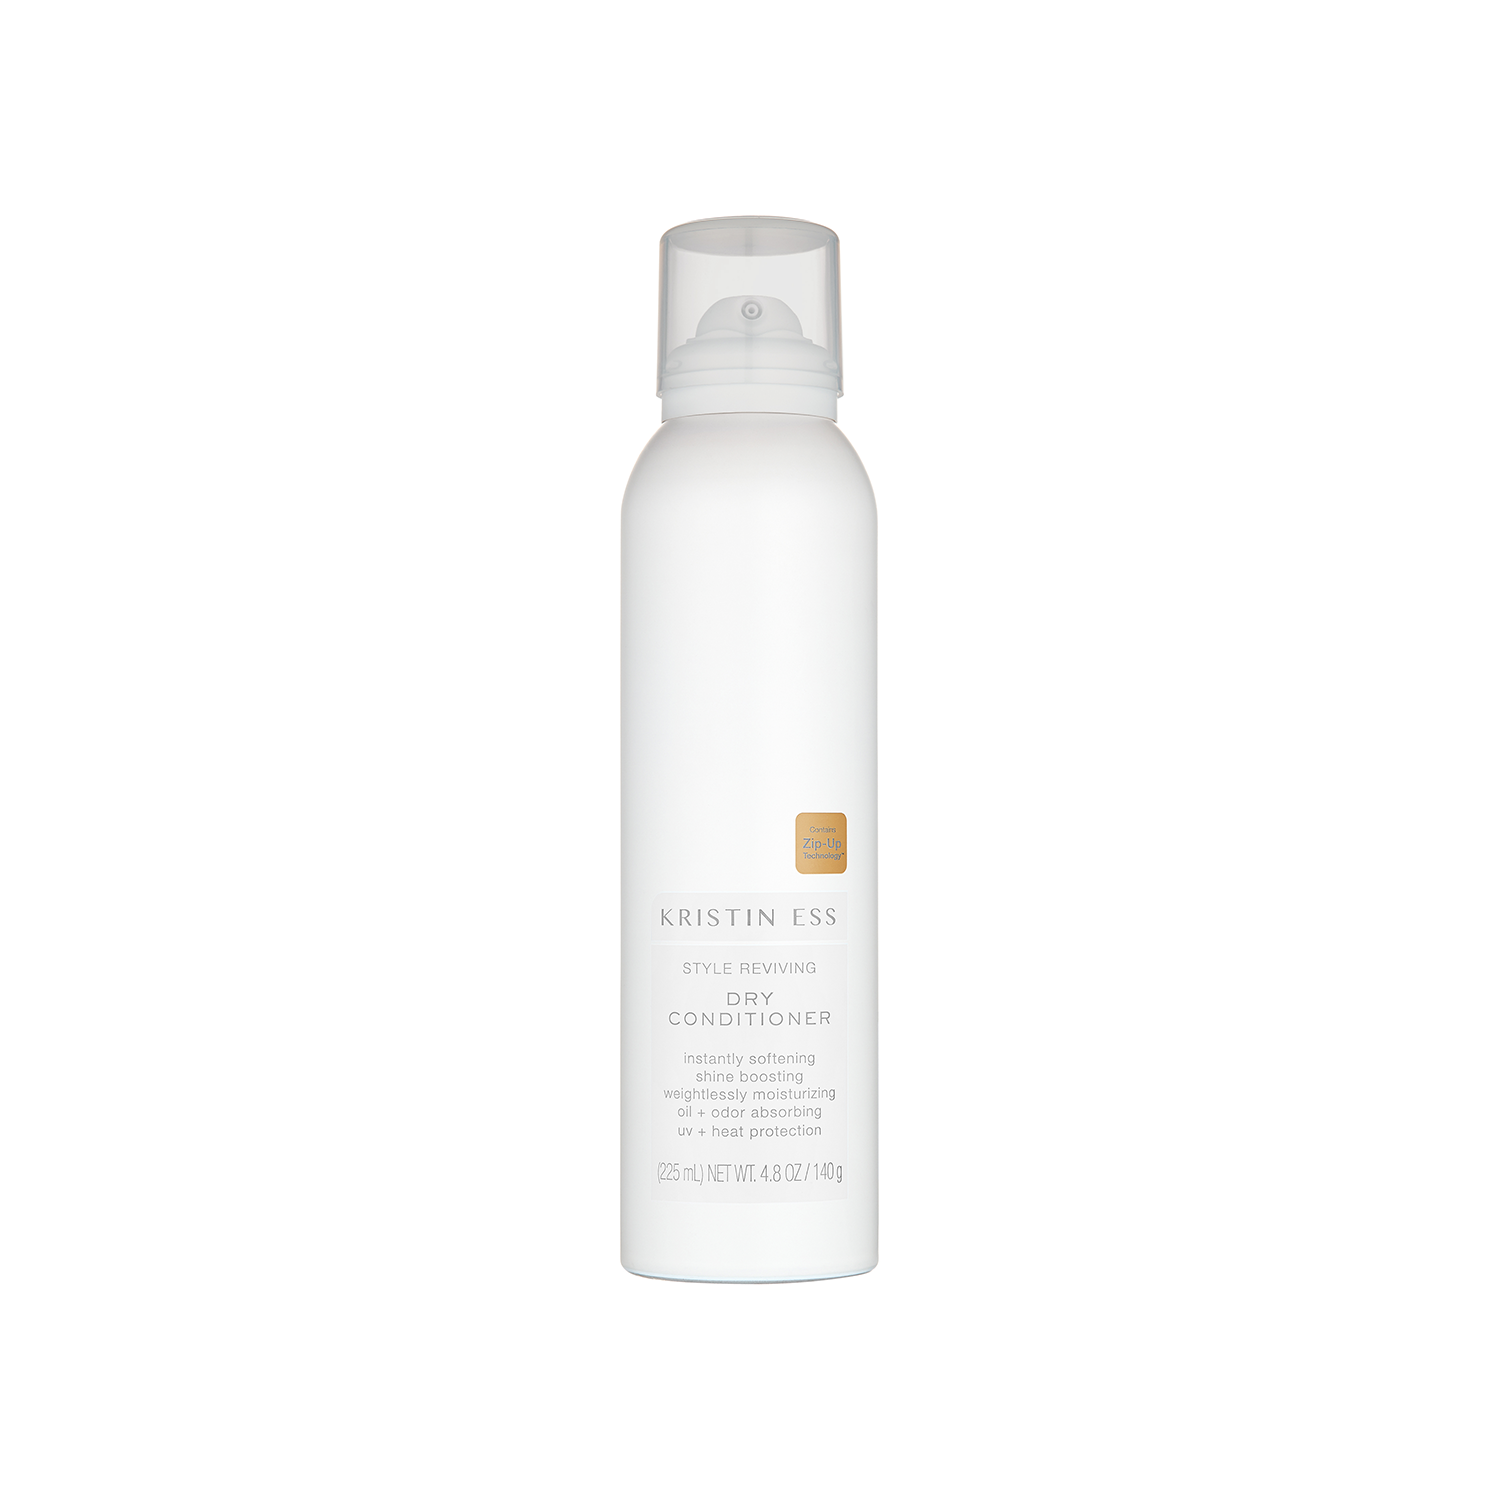 Style Reviving Dry Conditioner Kristin Ess